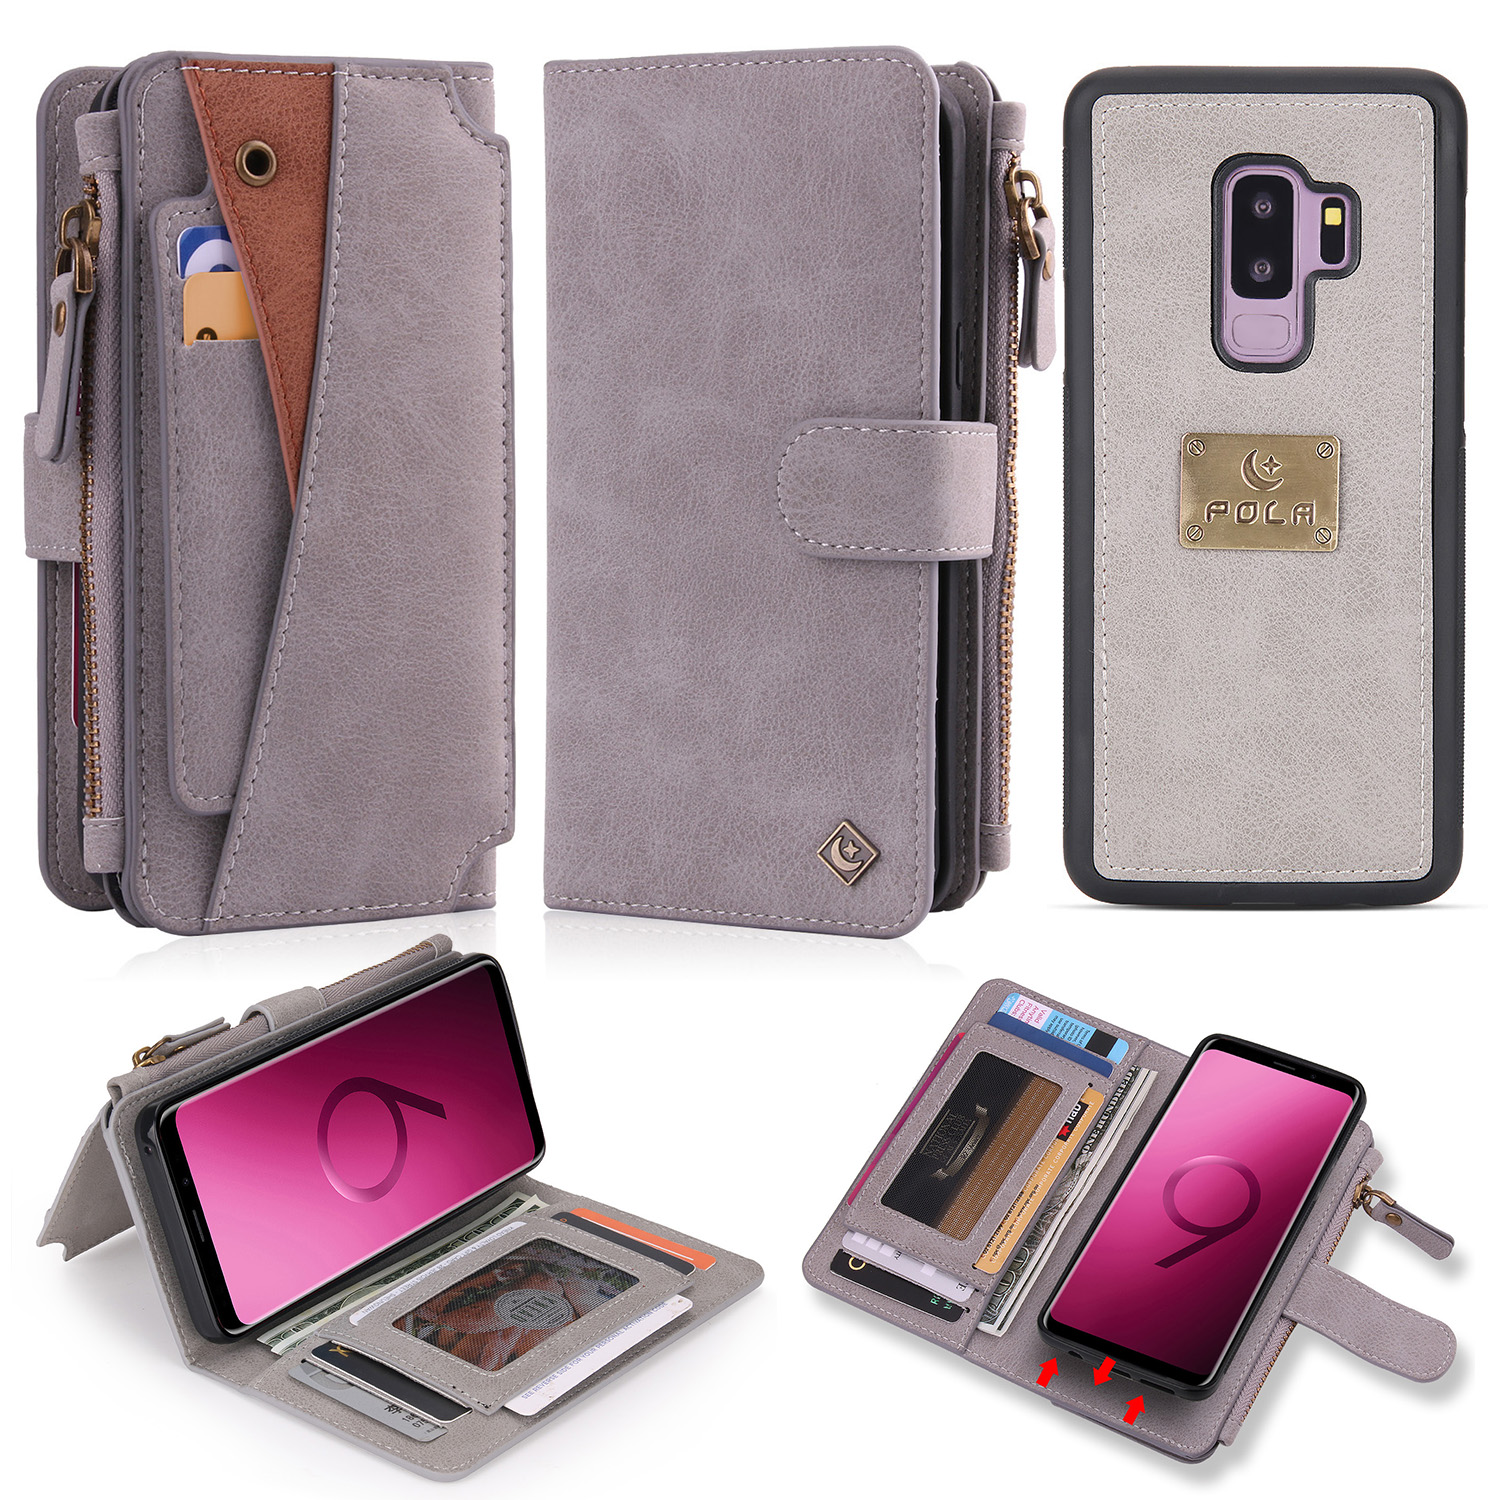 Galaxy S9 Case, Allytech PU Leather Folio Flip Stand Detachale Wallet Case Build In Metal Plate for Magnetic Car Mount Cards Holder Purase Clutch Zipper Wallet Cover for Samsung Galaxy s9, Gray